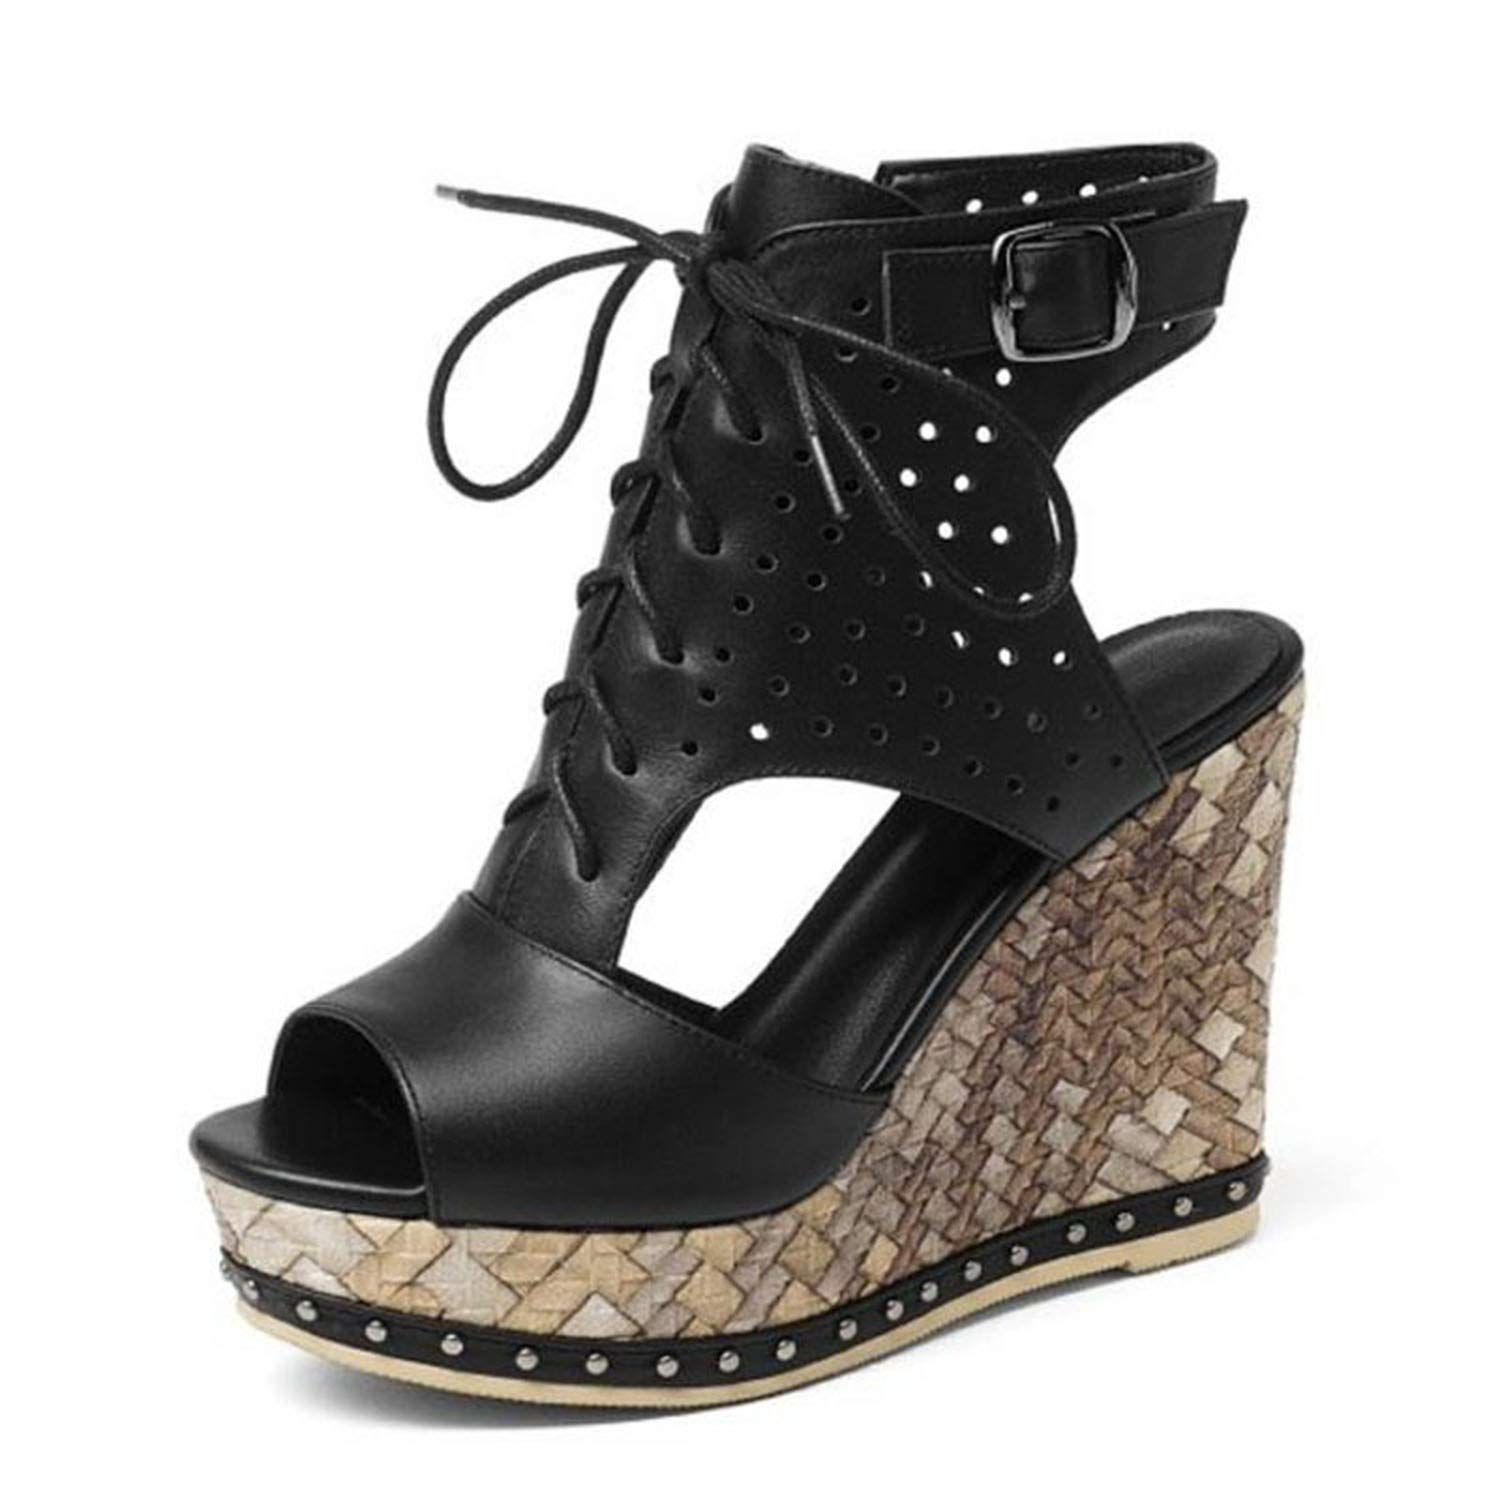 Black Forever Long Women High Heel Sandals Genuine Leather shoes Women Lace Up Zipper Open Toe Sexy Platform shoes